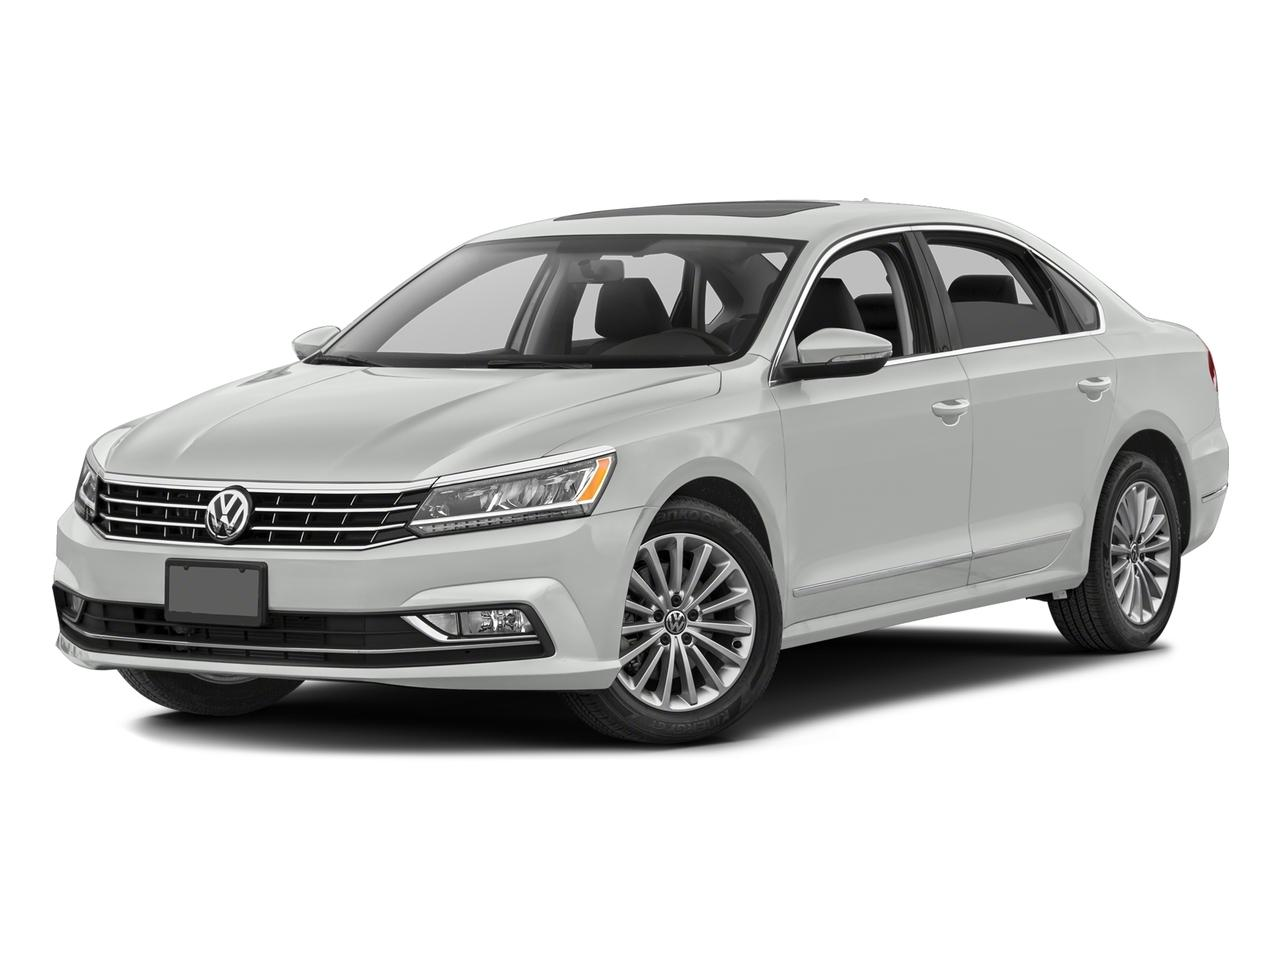 2016 Volkswagen Passat Vehicle Photo in Killeen, TX 76541